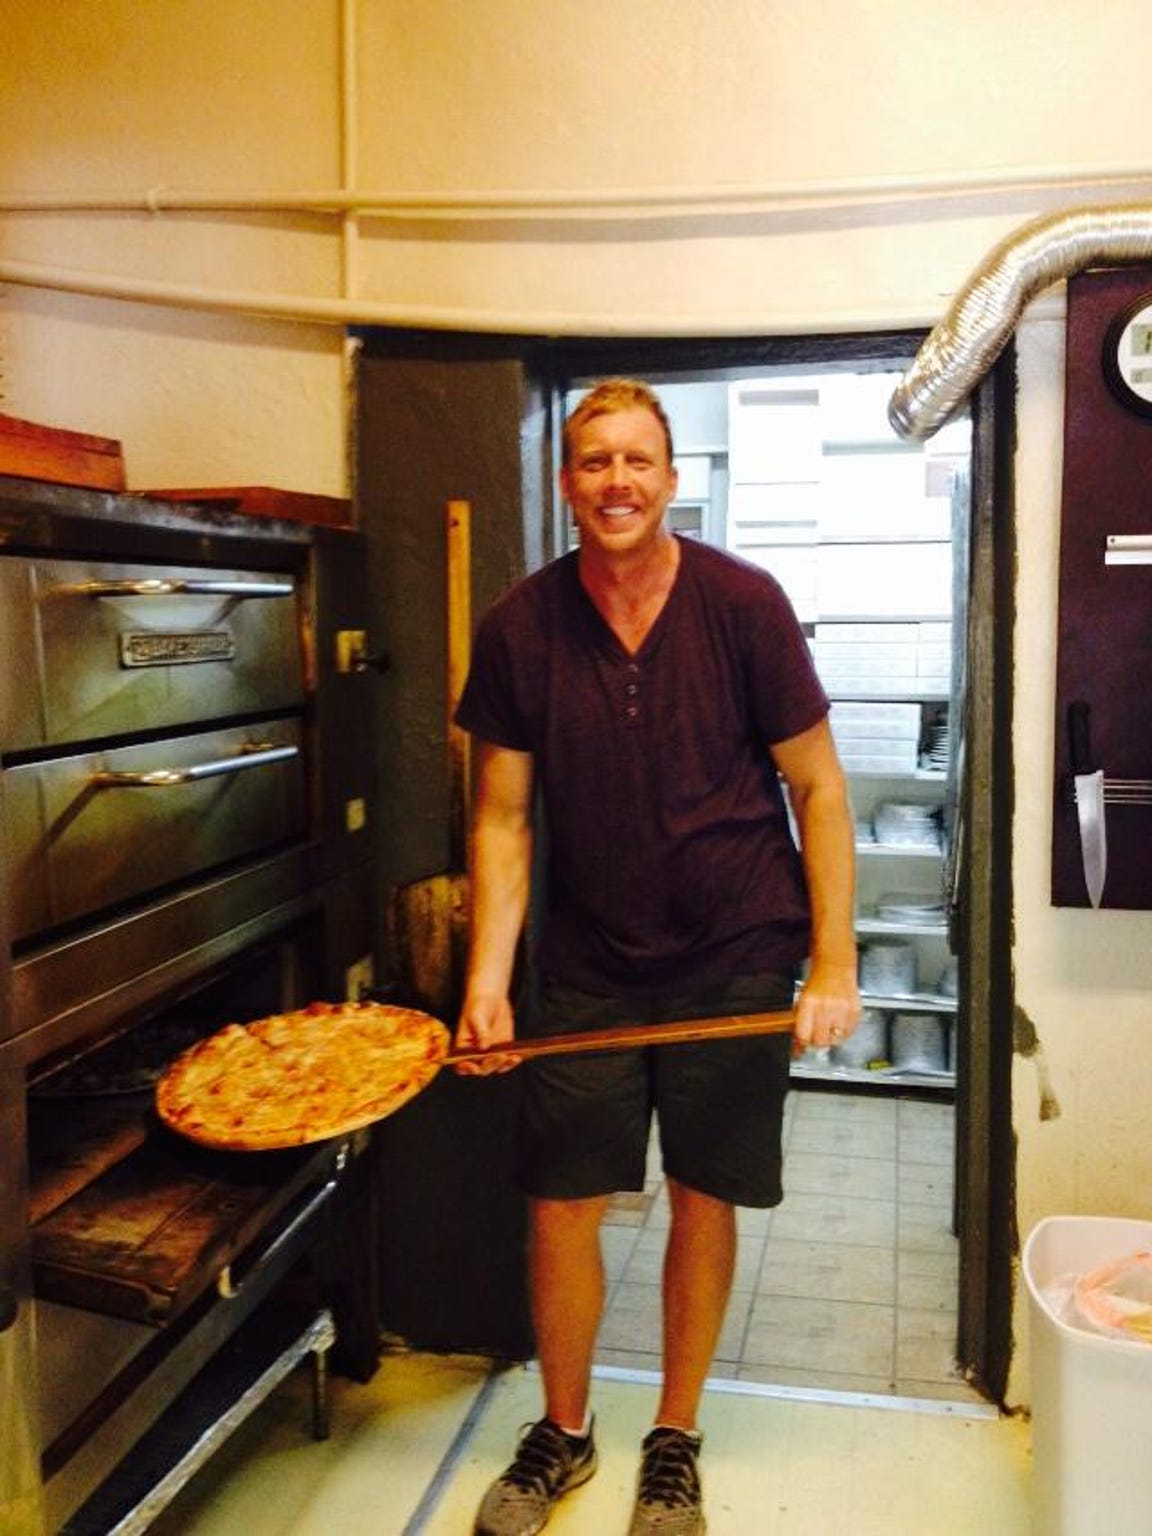 Joel Moroney opened McGregor Pizza & Deli Co. in Fort